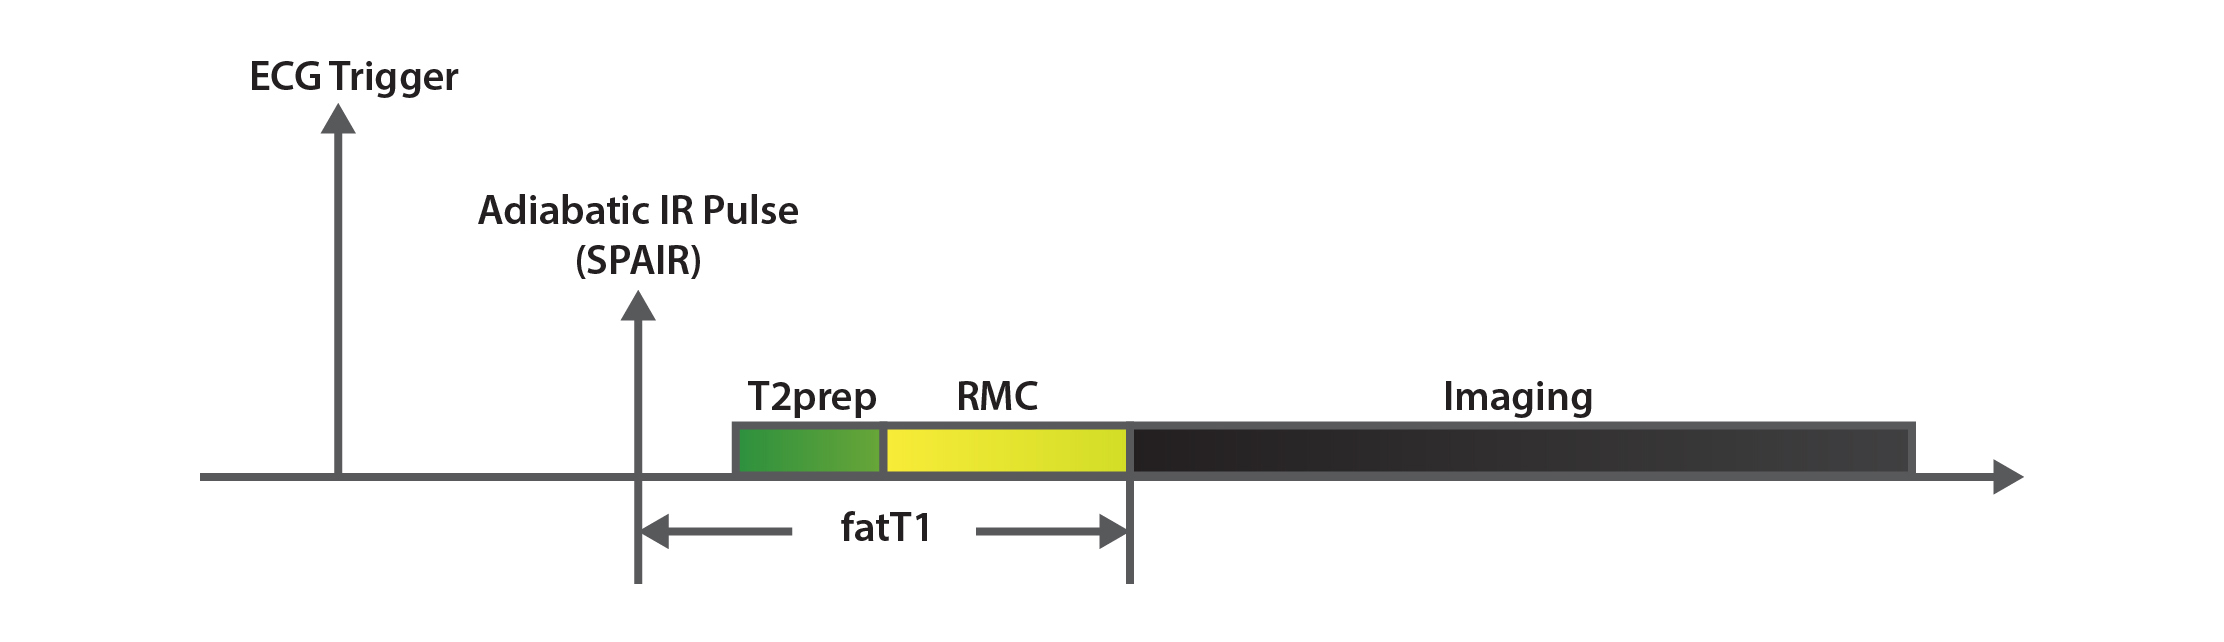 MRCA Sequence Diagram